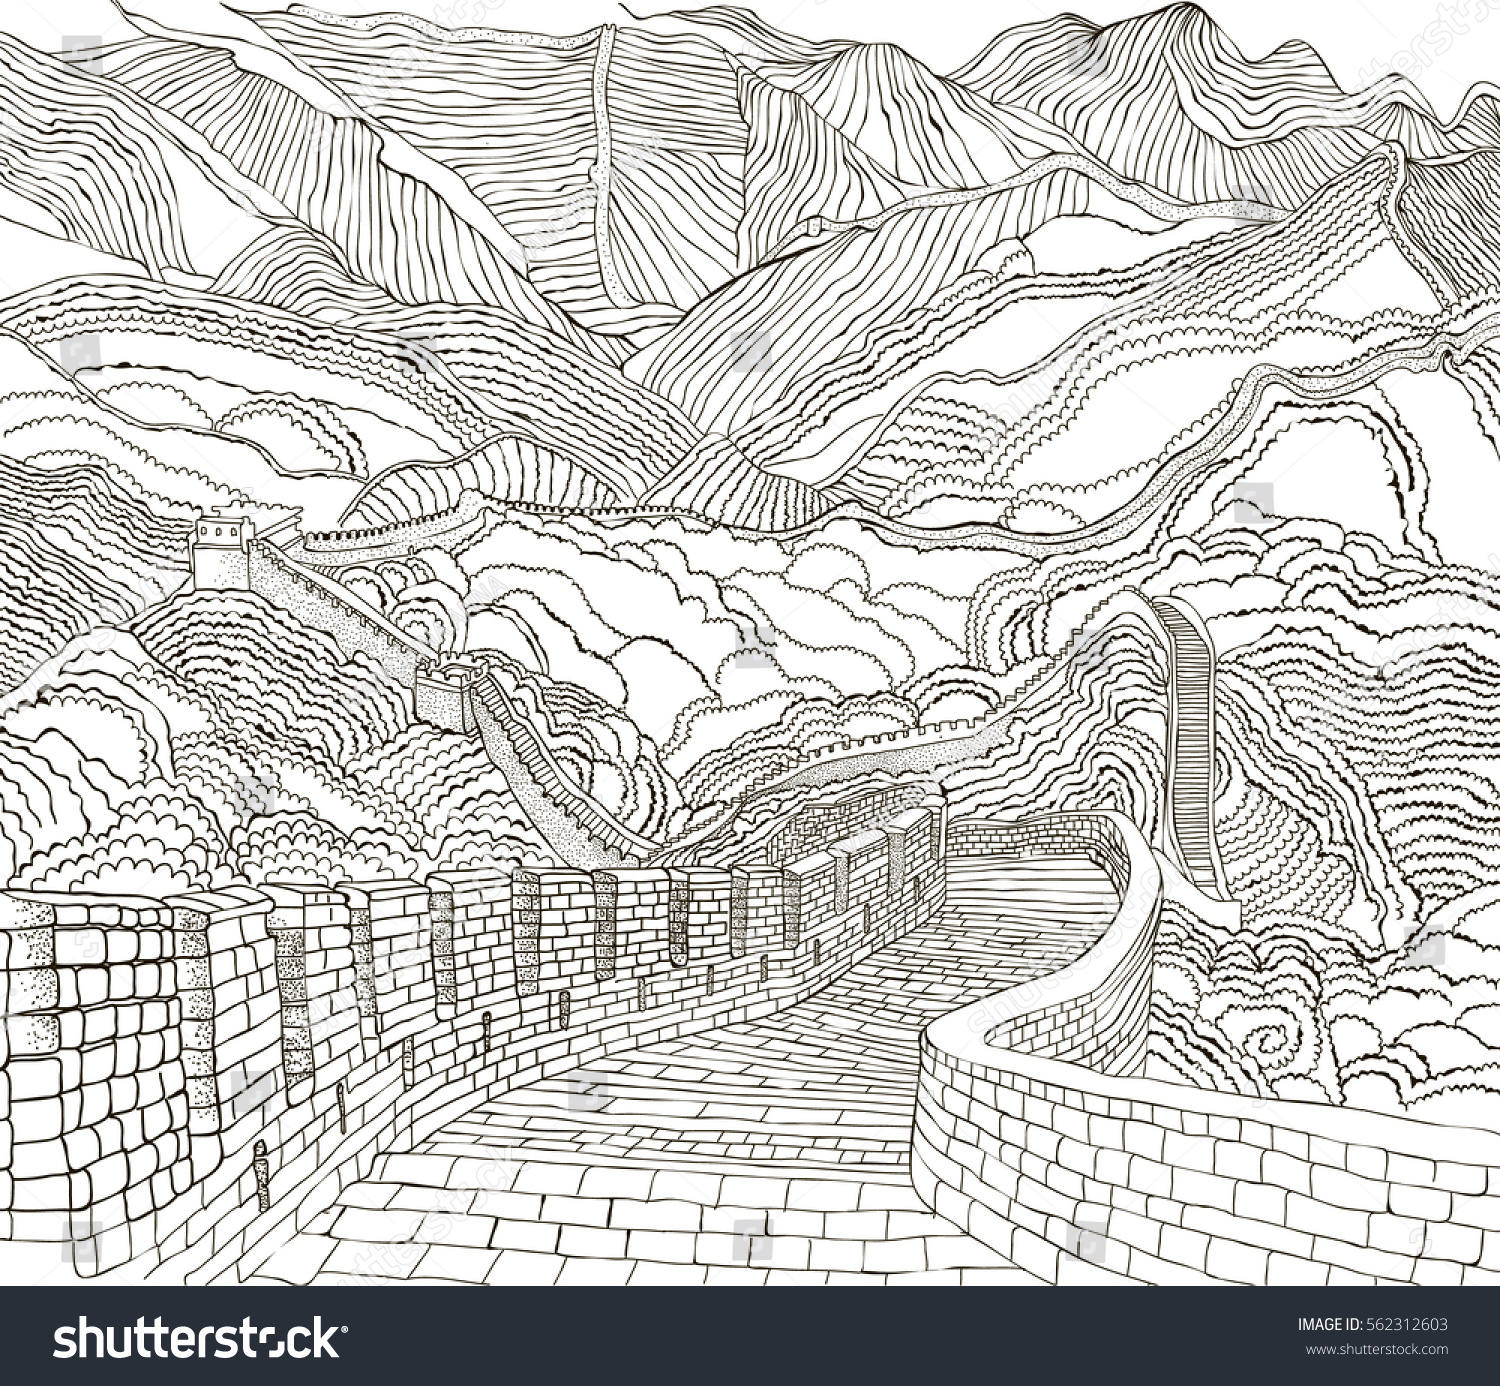 coloring pages the great wall of china - Great Wall China Coloring Page